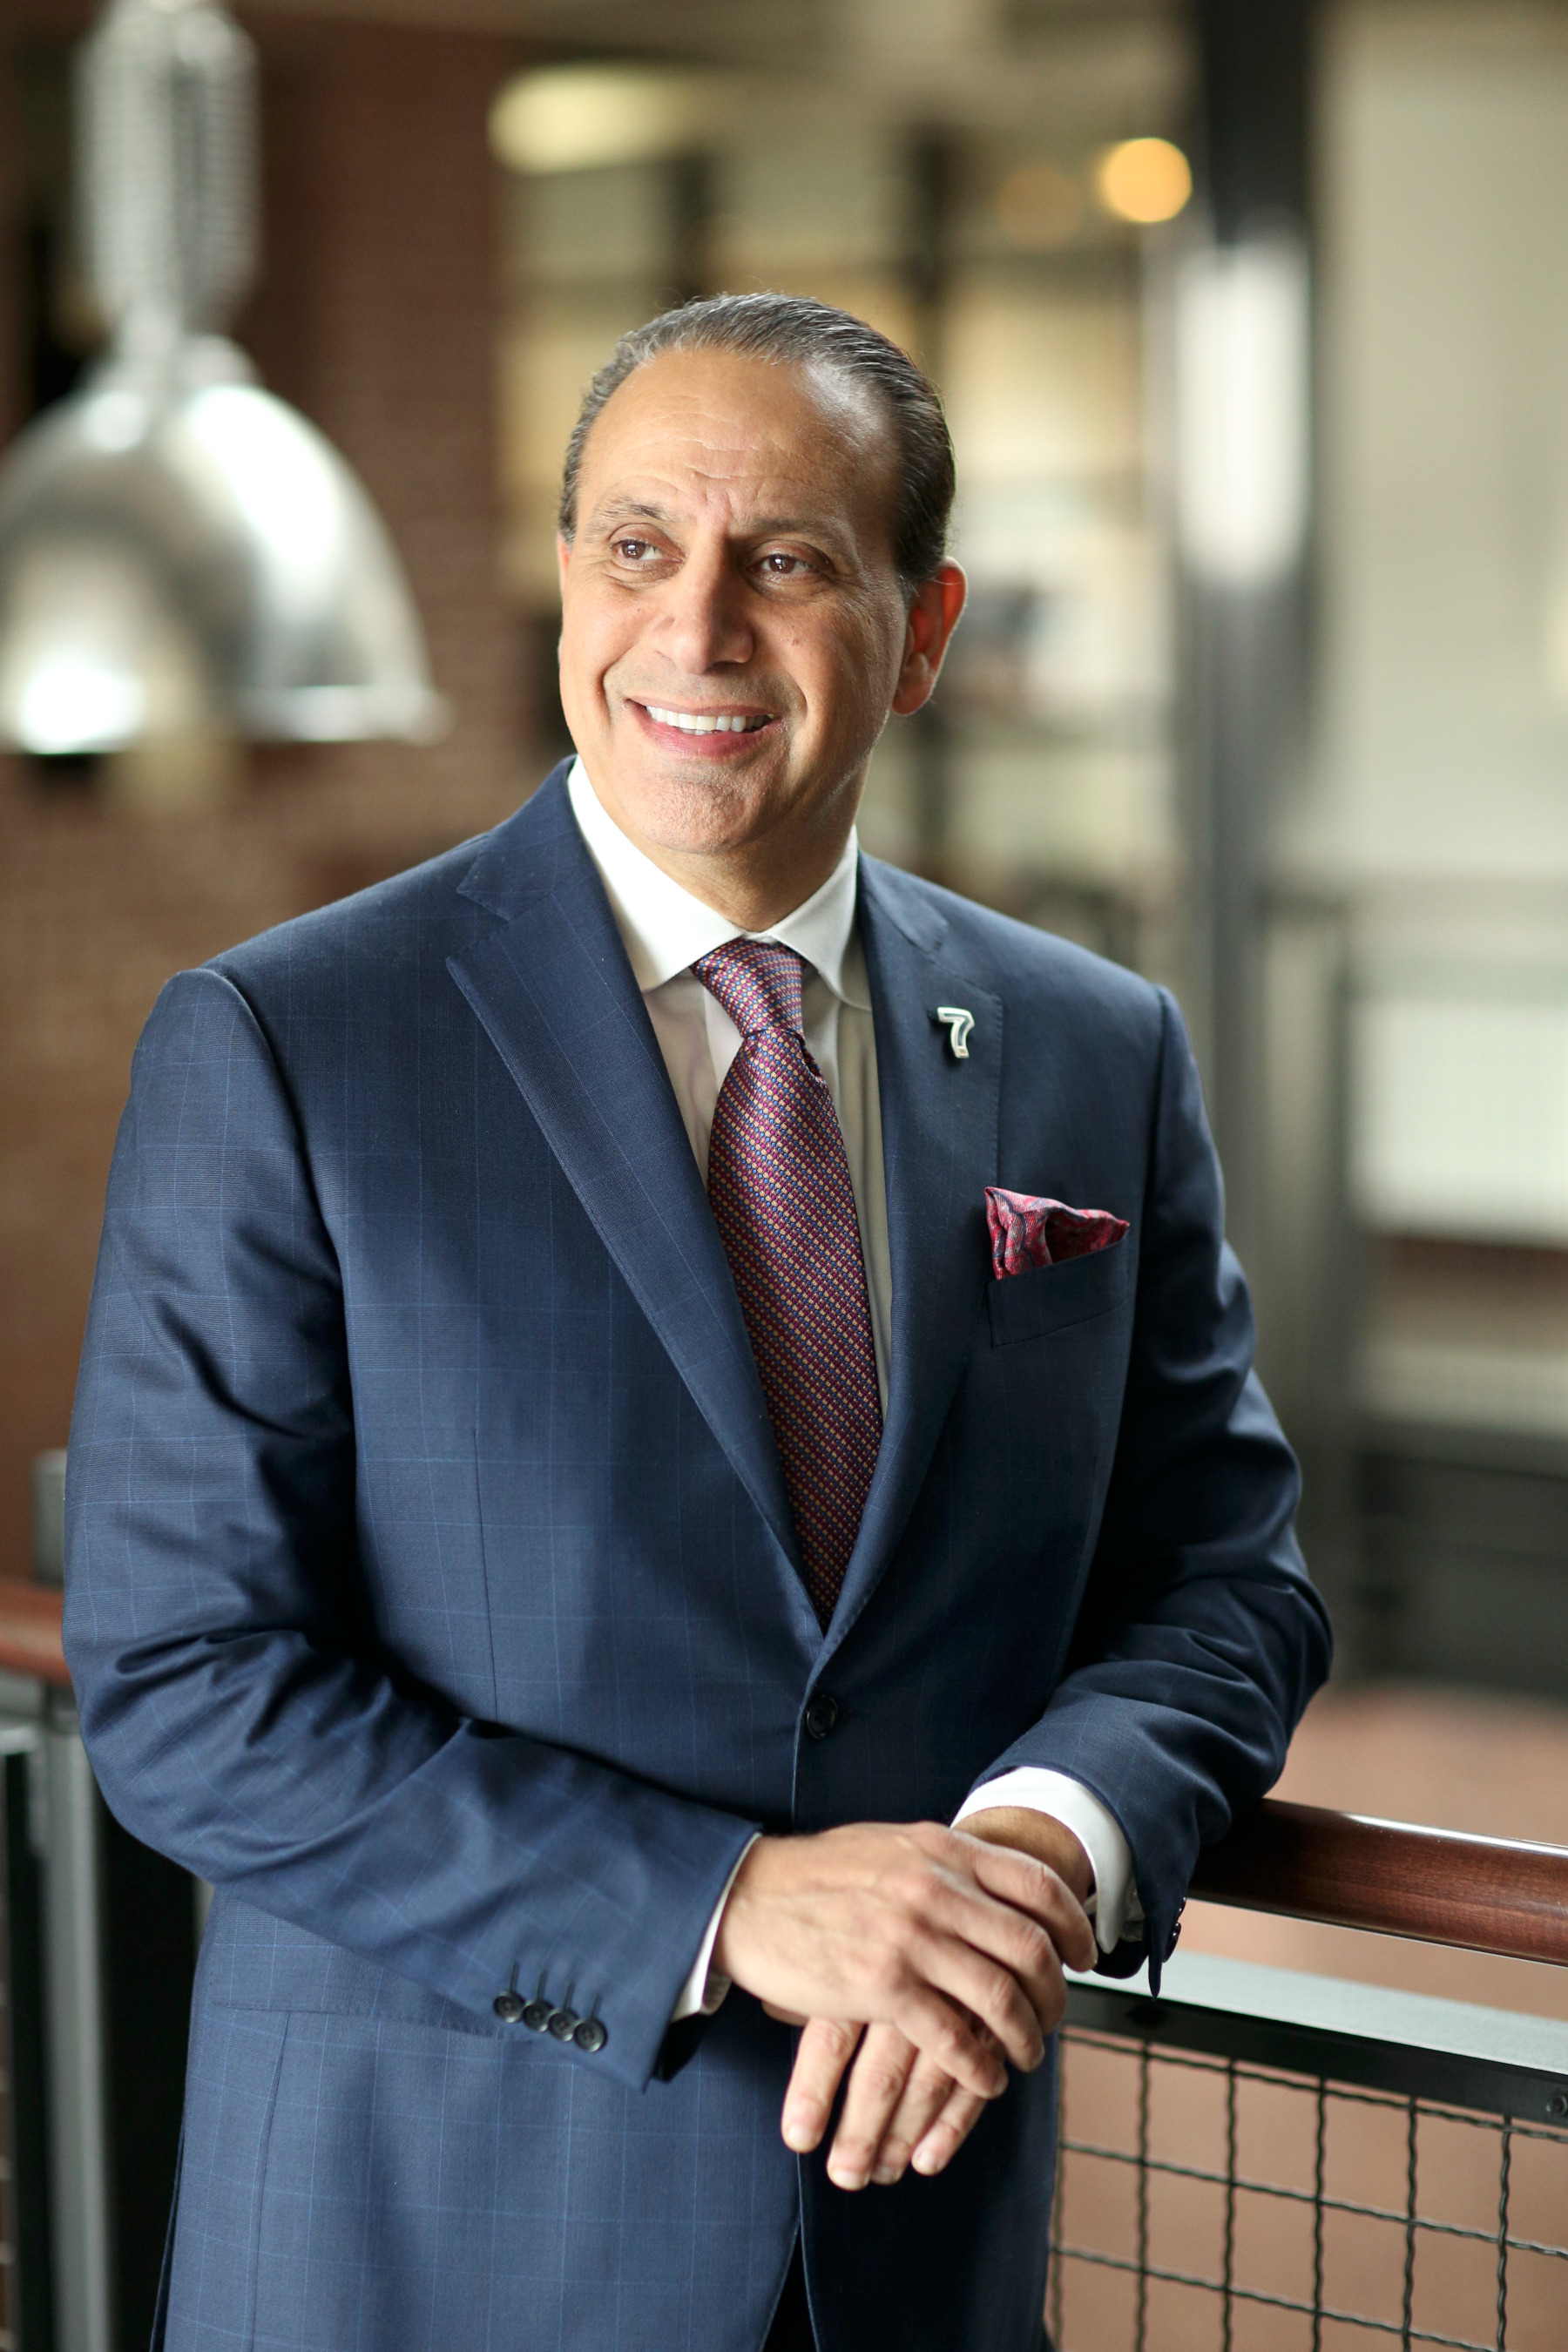 Alexander Shunnarah, founder and president of Alexander Shunnarah Trial Attorneys, P.C.